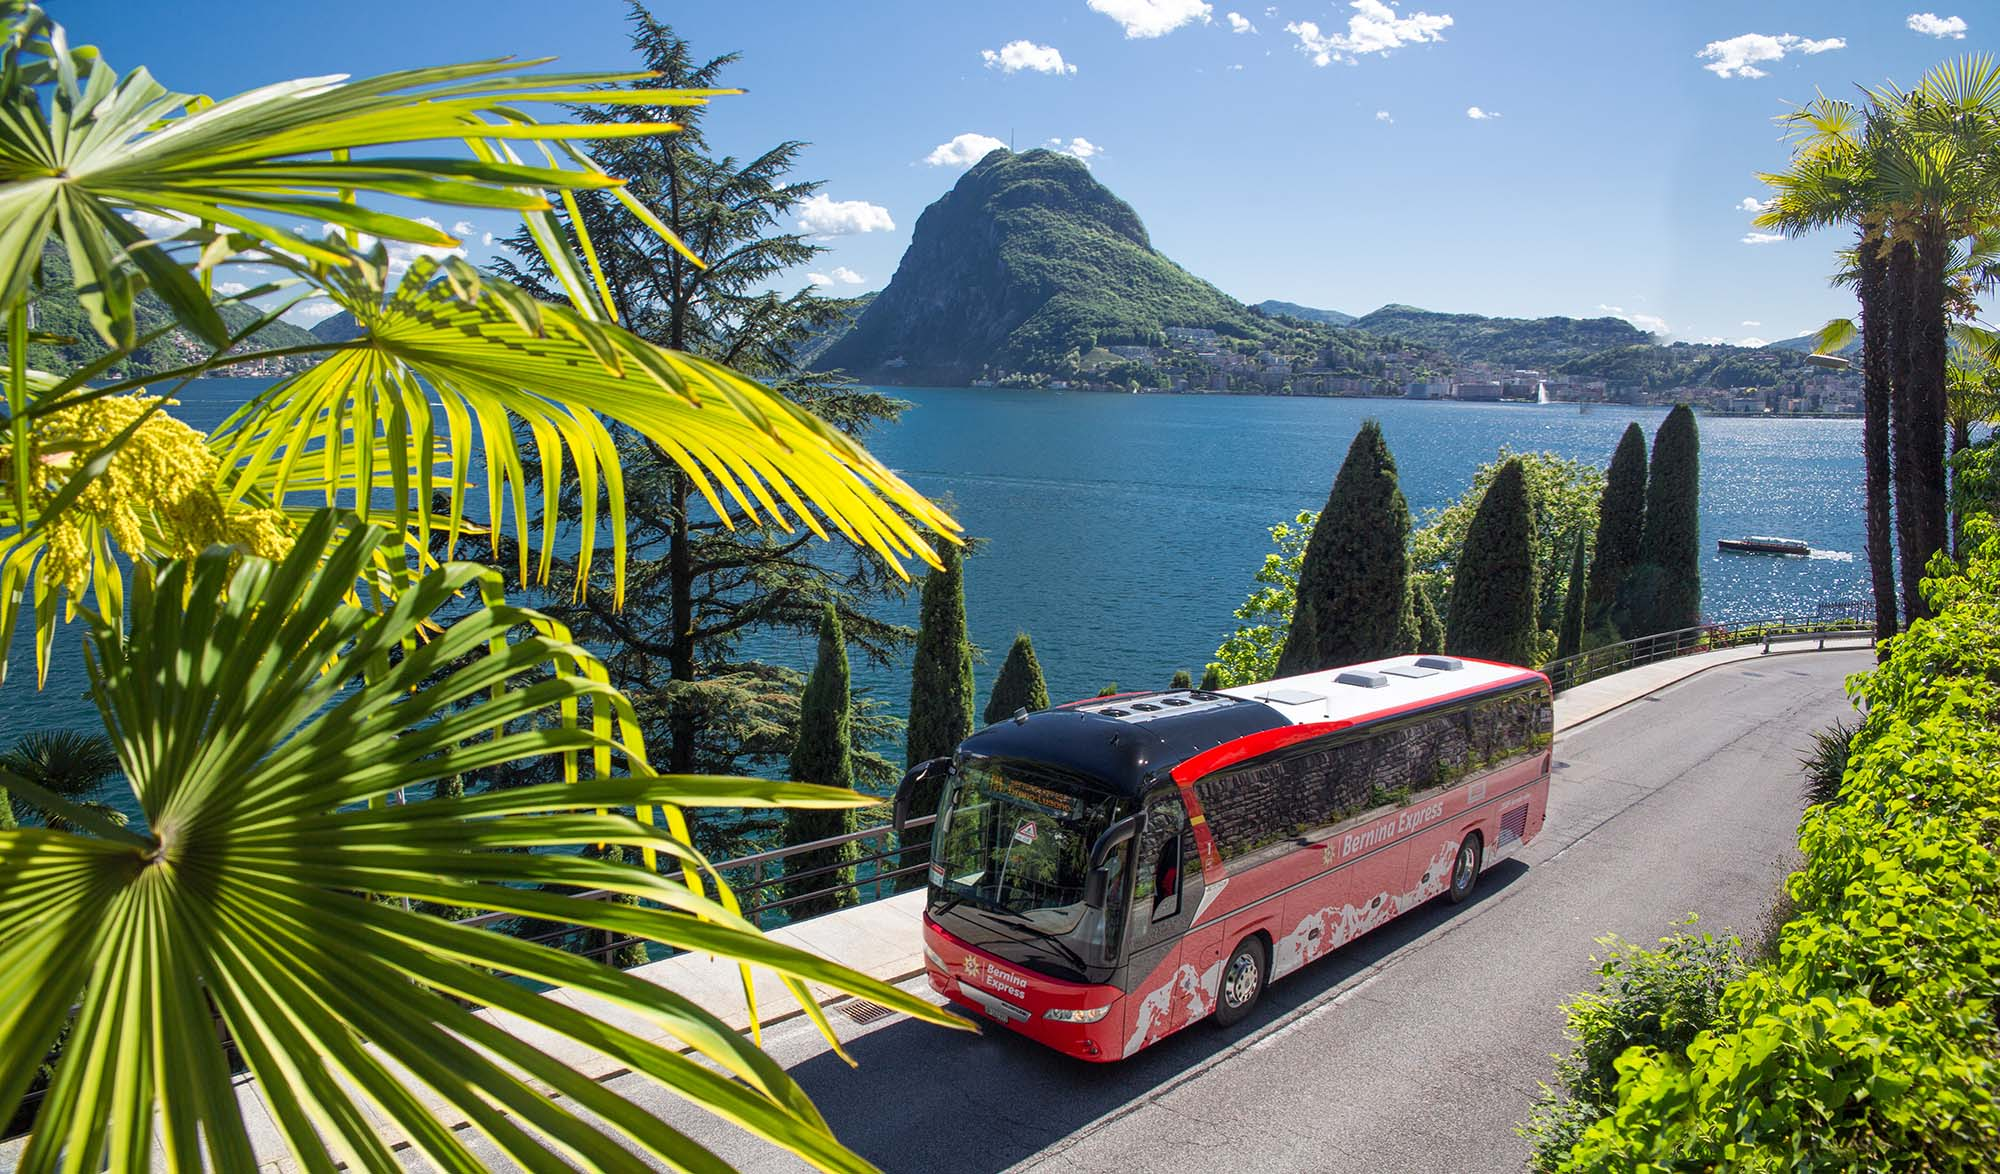 Bernina Express - Der Bernina Express Bus verbindet Tirano mit Lugano. Hier am Lago di Lugano. Bernina Express - The Bernina Express Bus provides a link between Tirano and Lugano. Shown here by Lake Lugano. Bernina Express - L'autobus collega Tirano a Lugano. Qui presso il Lago di Lugano. Copyright by Rhaetische Bahn By-line: swiss-image.ch/Christof Sonderegger